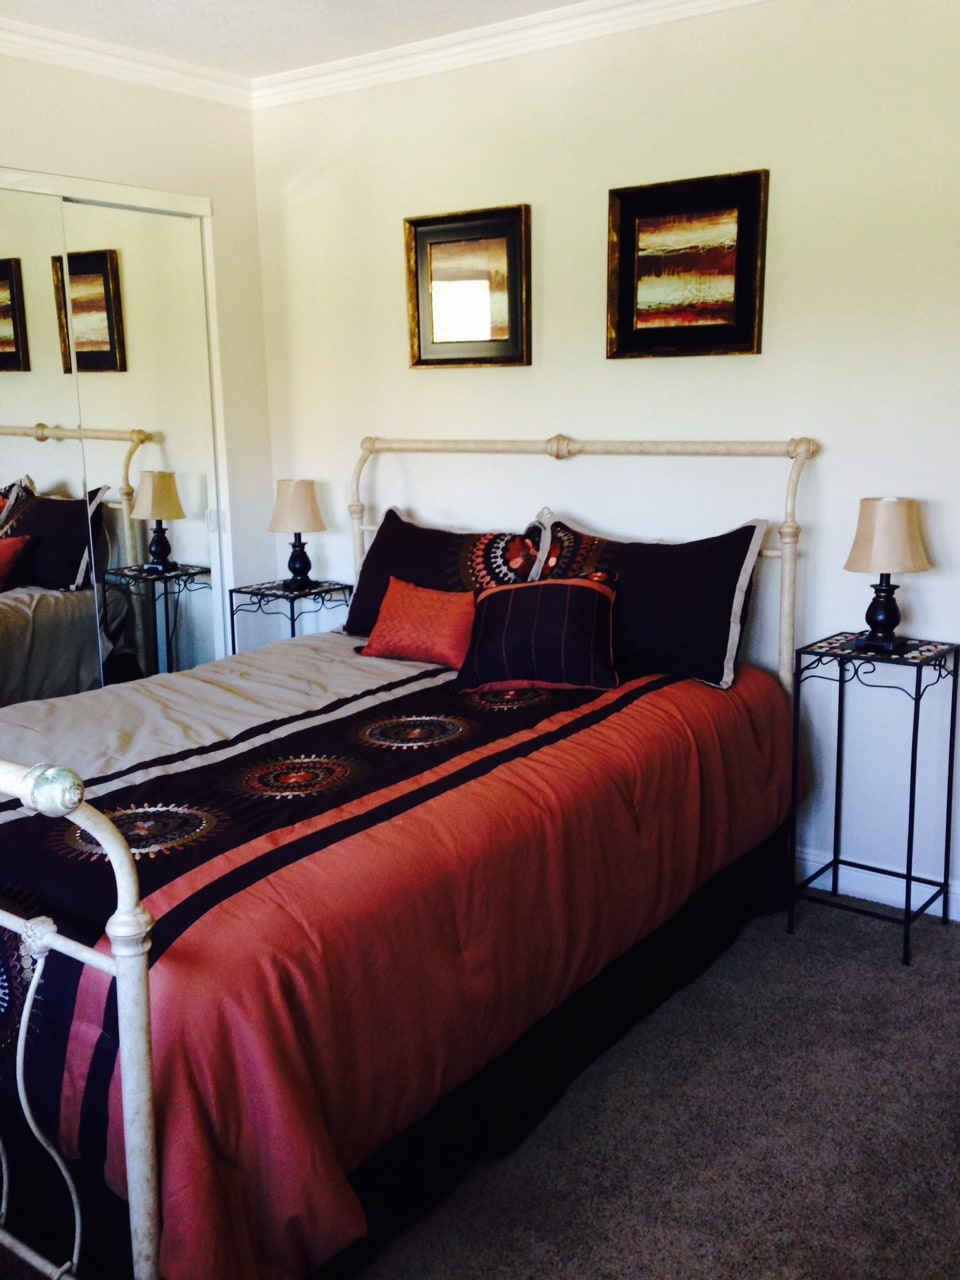 Bedroom 1, queen bed with recliner and available closet and dresser space.